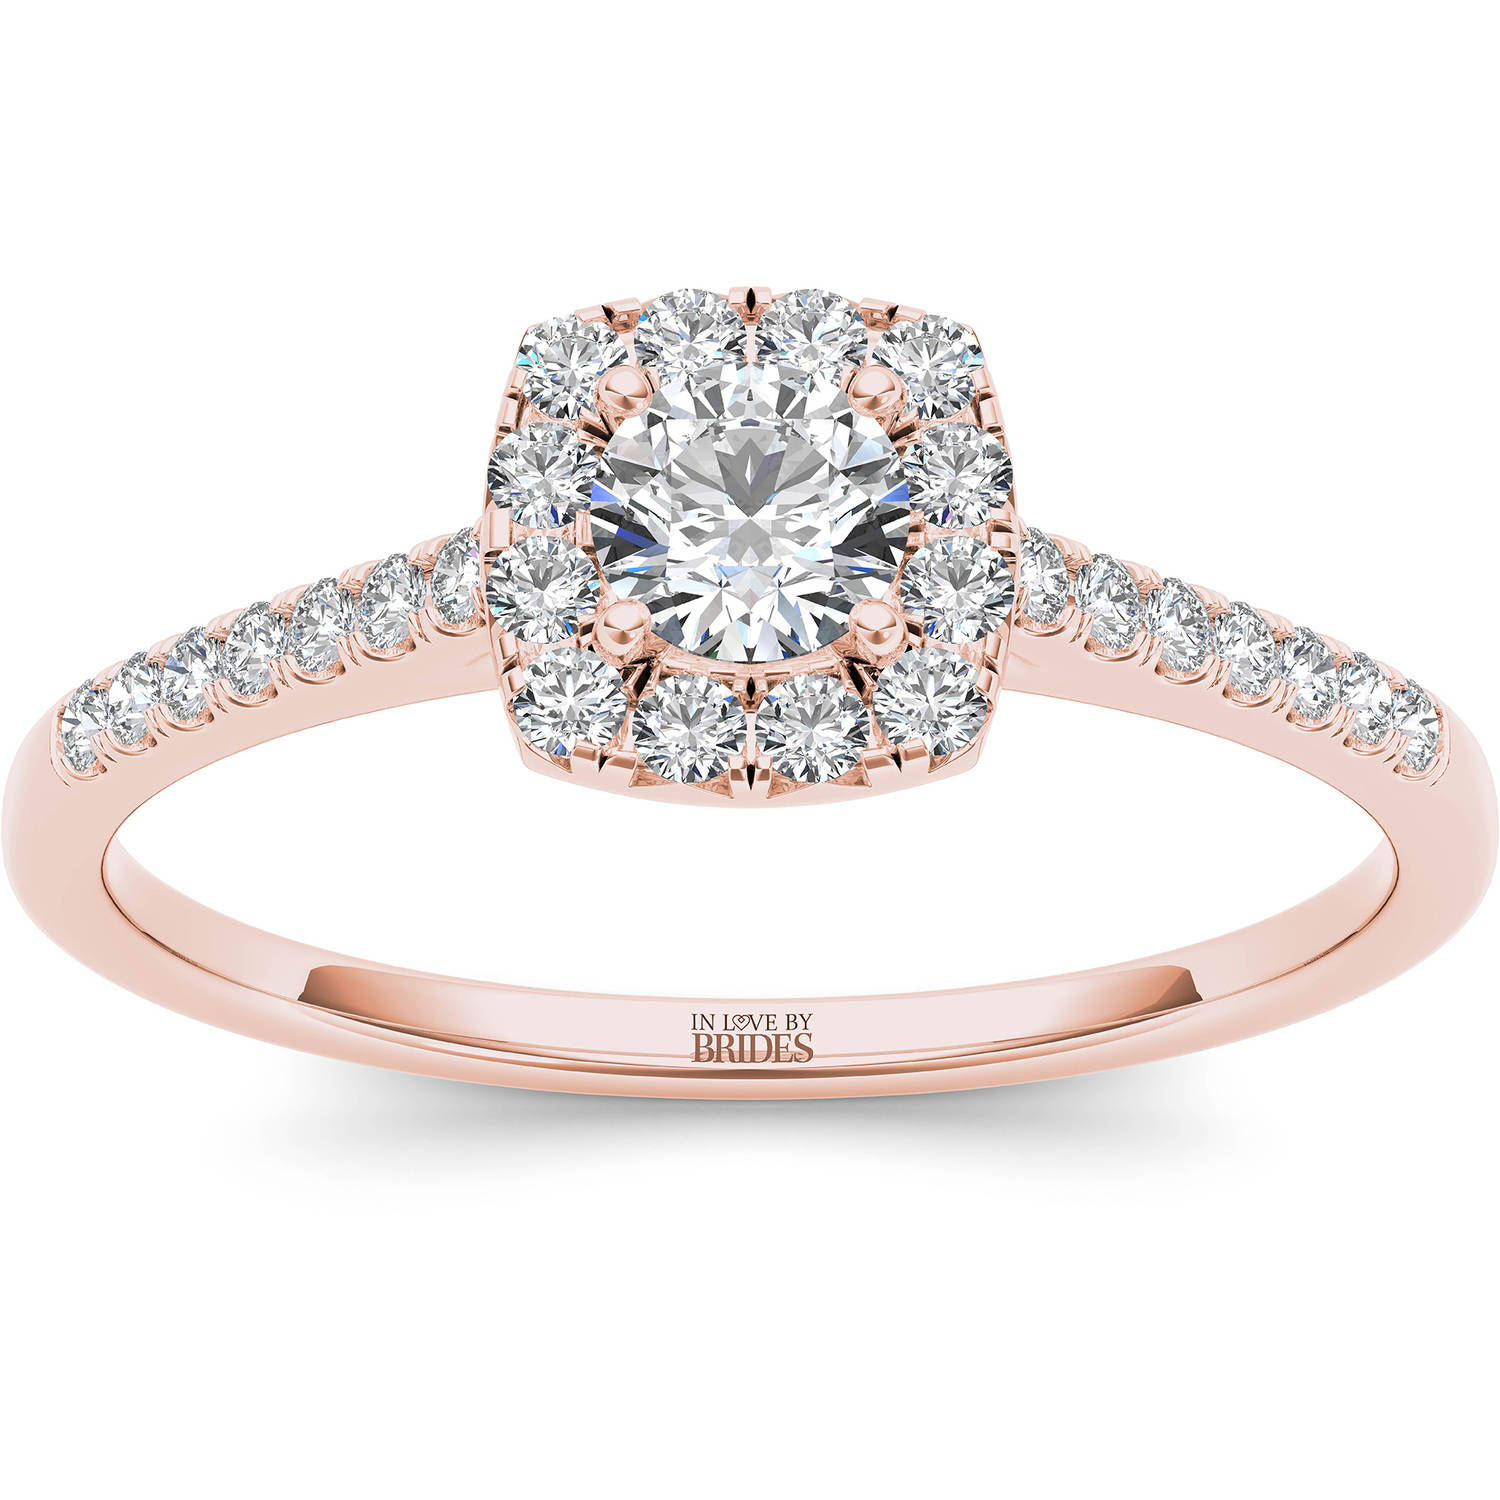 IN LOVE BY BRIDES 3/8 Carat T.W. Certified Diamond Cushion Halo 14kt Pink Gold Engagement Ring